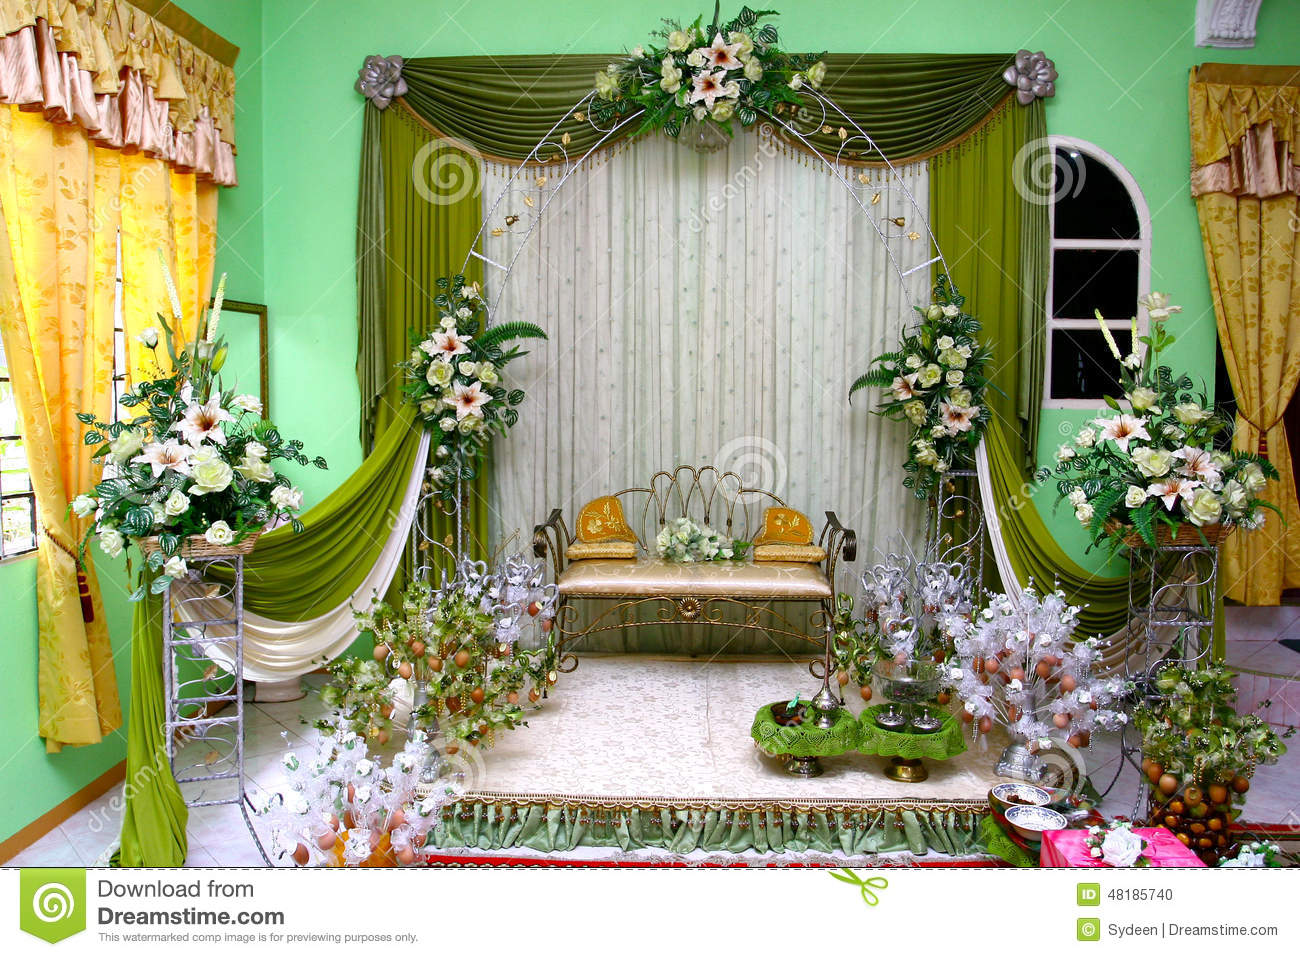 Wedding Design And Decor Prices Wedding Planning